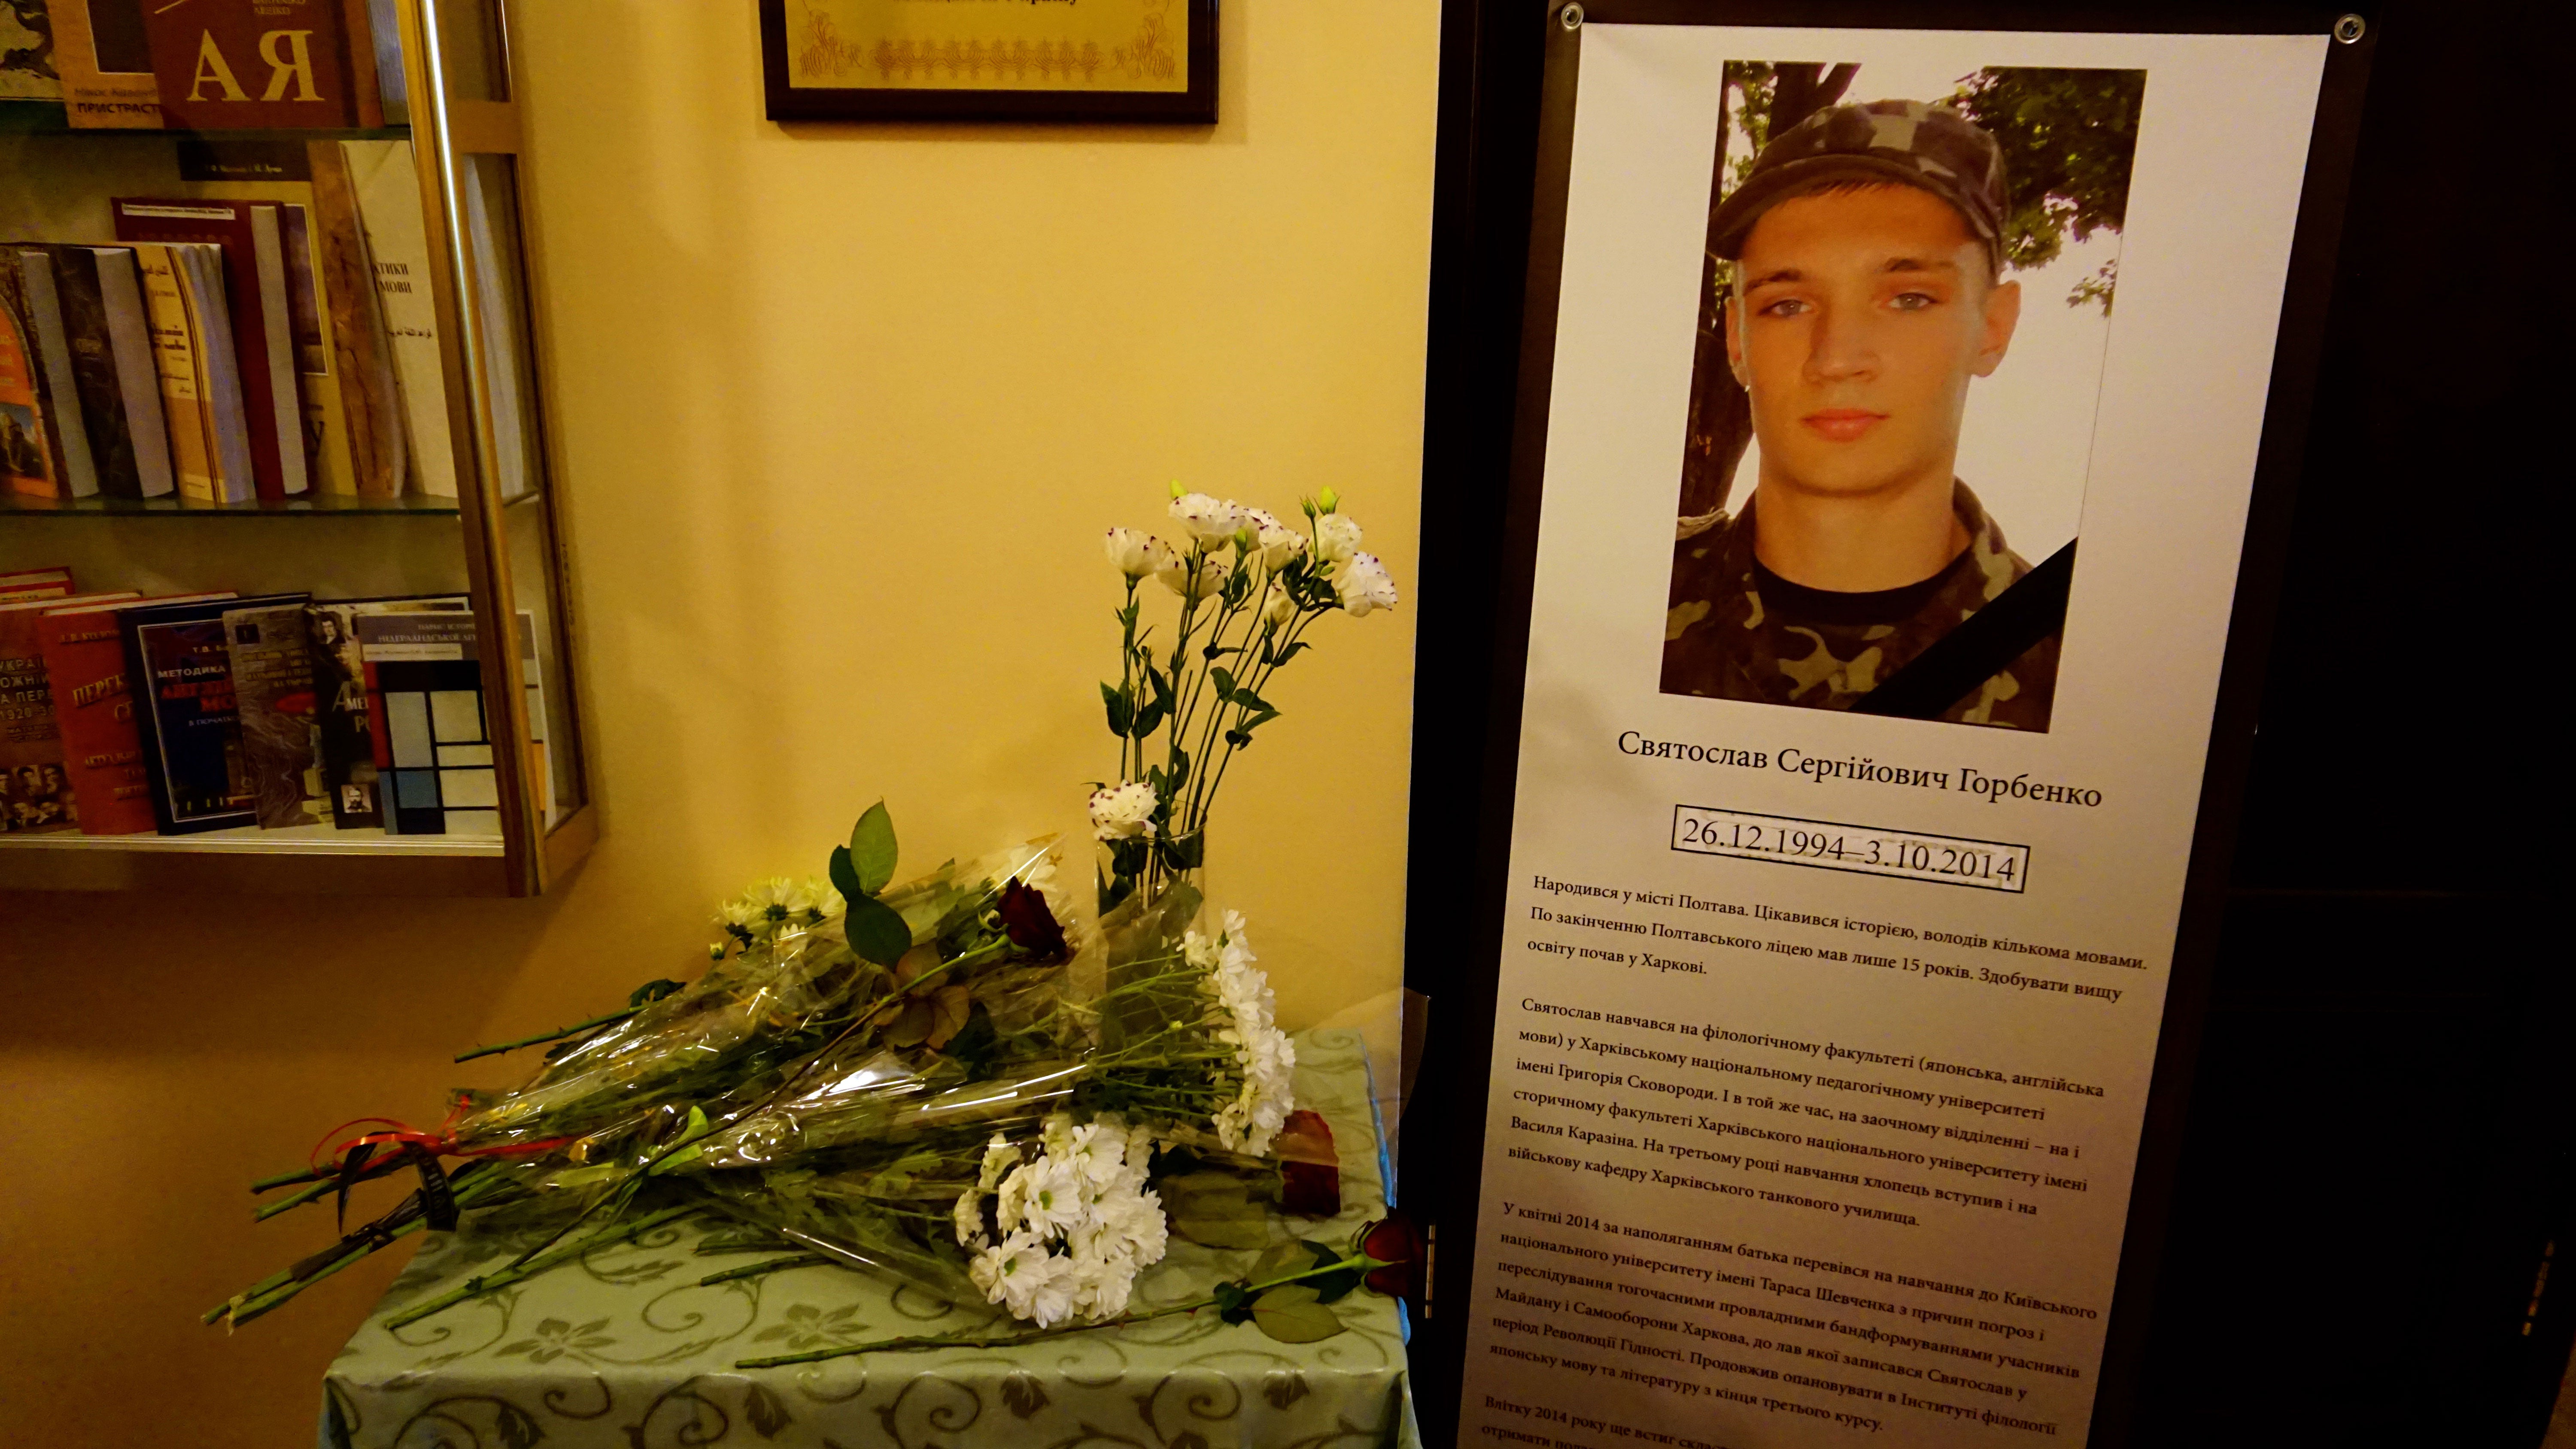 A memorial to Sviatoslav Horbenko, a 20-year-old university student who died fighting in eastern Ukraine. (Photo: Nolan Peterson/The Daily Signal)